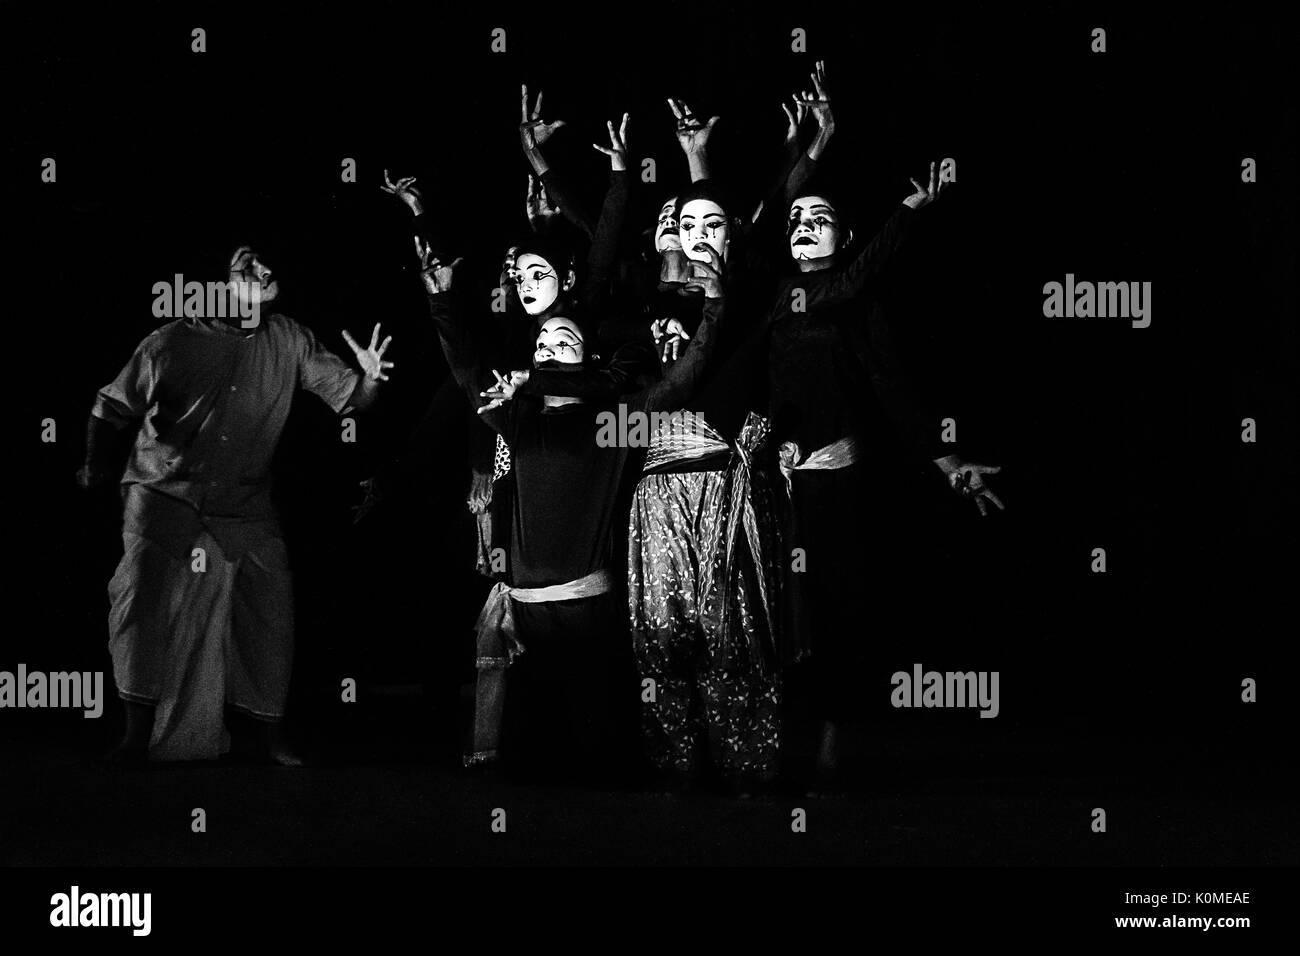 mime artists performing at national mime festival, Kolkata, west Bengal, India, Asia - Stock Image